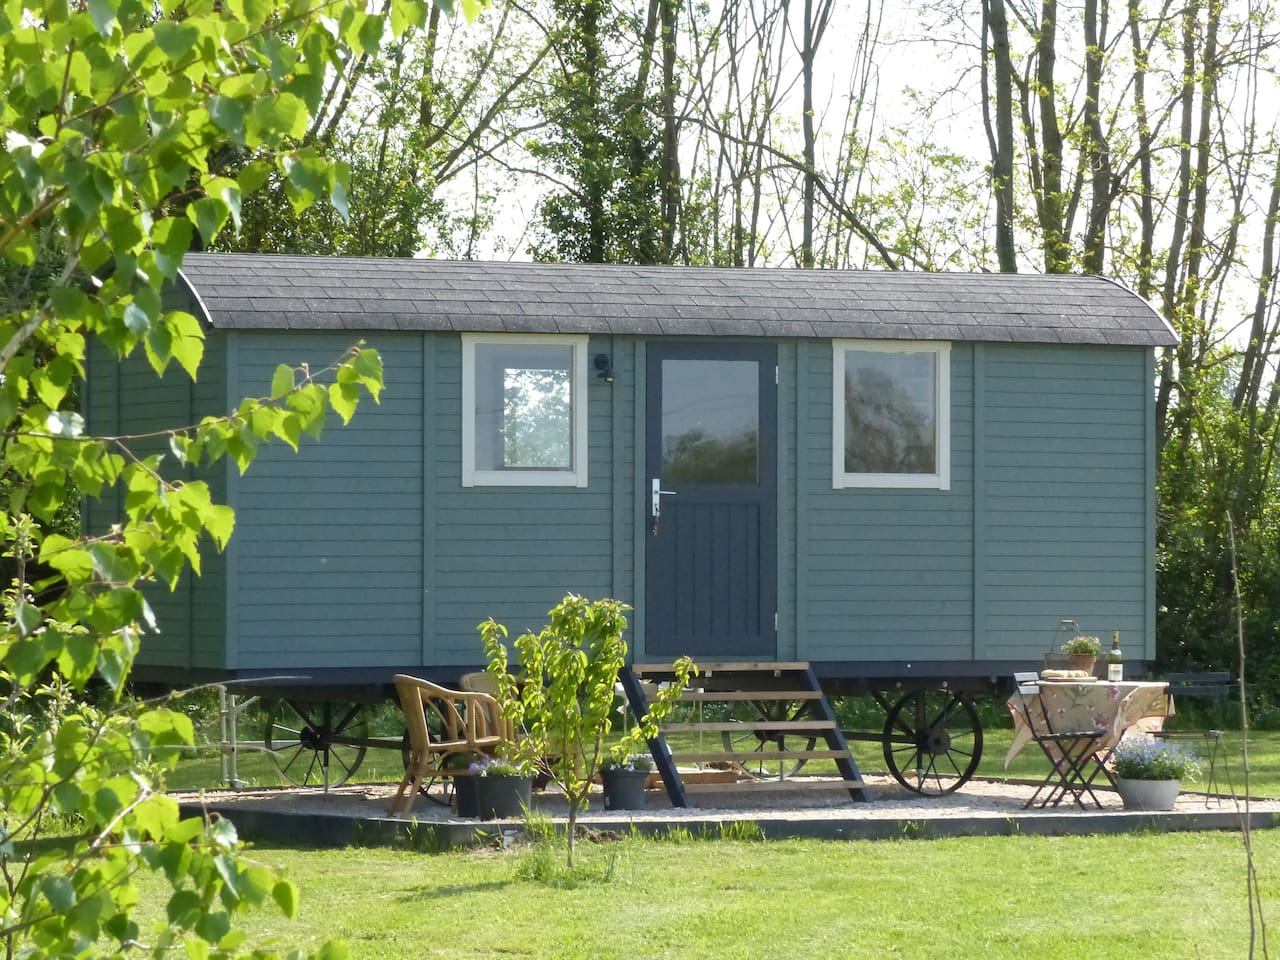 Shepherds hut for 2